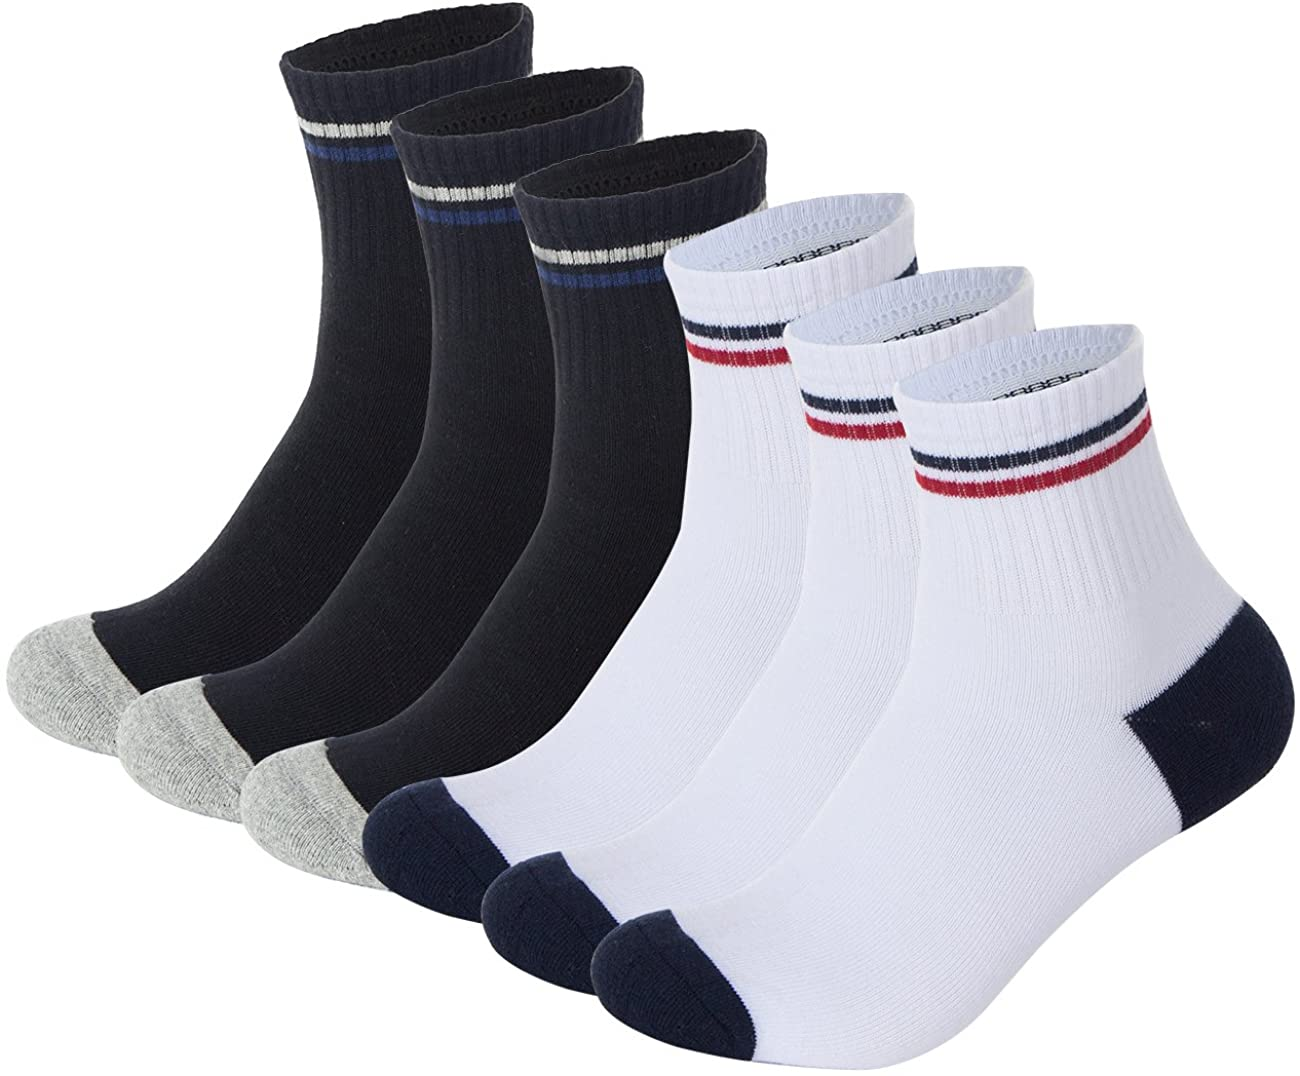 Pinkpum 6 Pack Cotton Casual Ankle Athletic Socks for Size 6-12